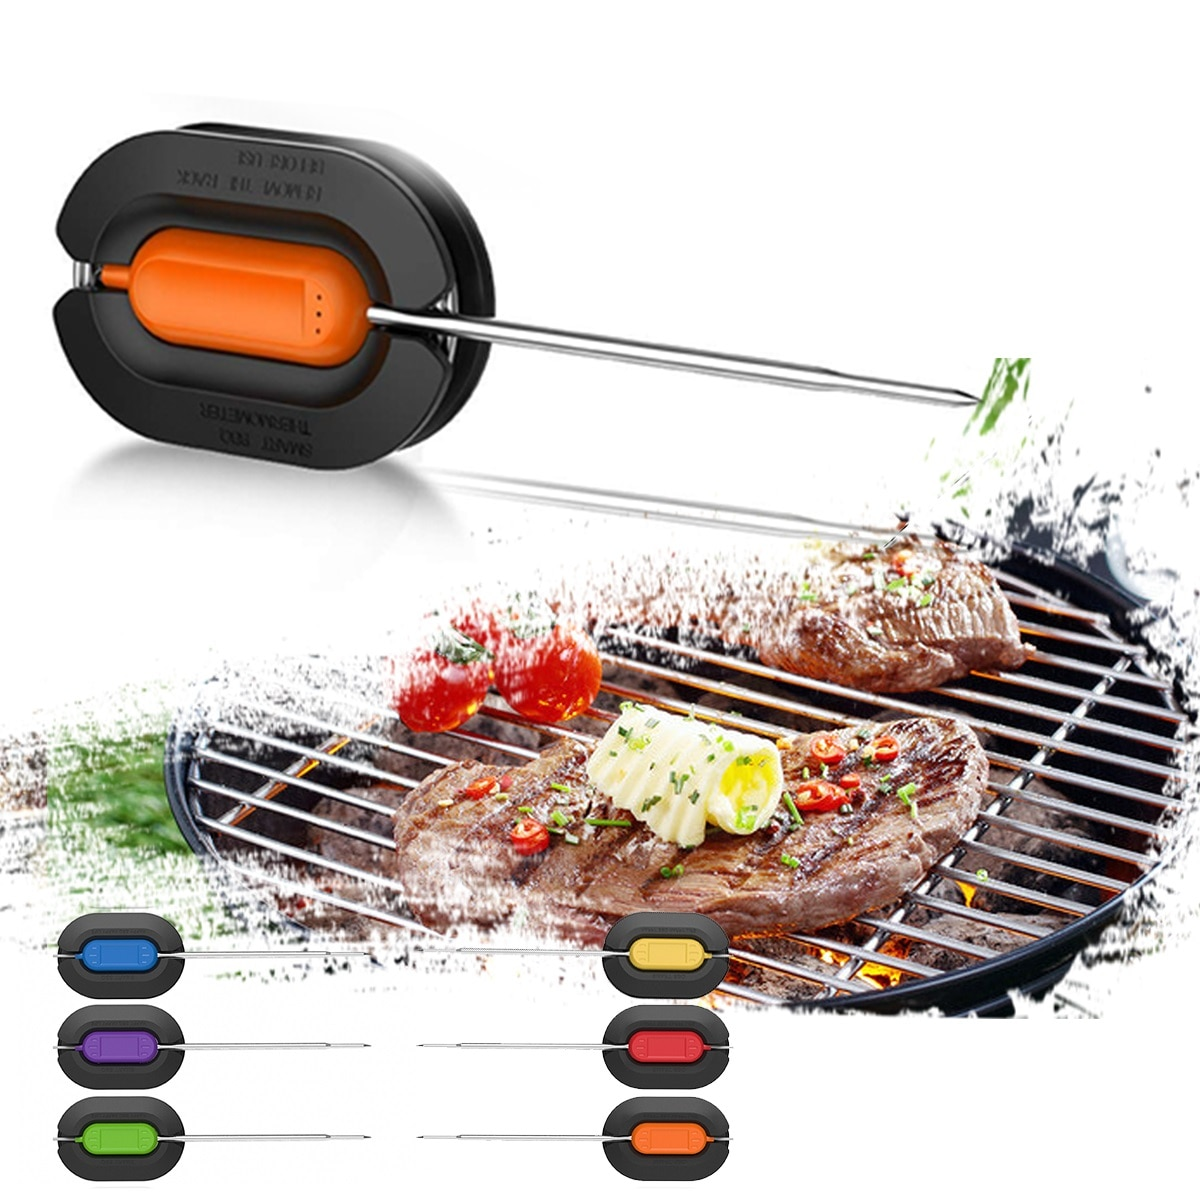 6PCS15cm Stainless Steel Probes Digital Wireless Smart BBQ Grill Barbecue Meat Food Cooking Smoker Thermometer Kitchen Tool